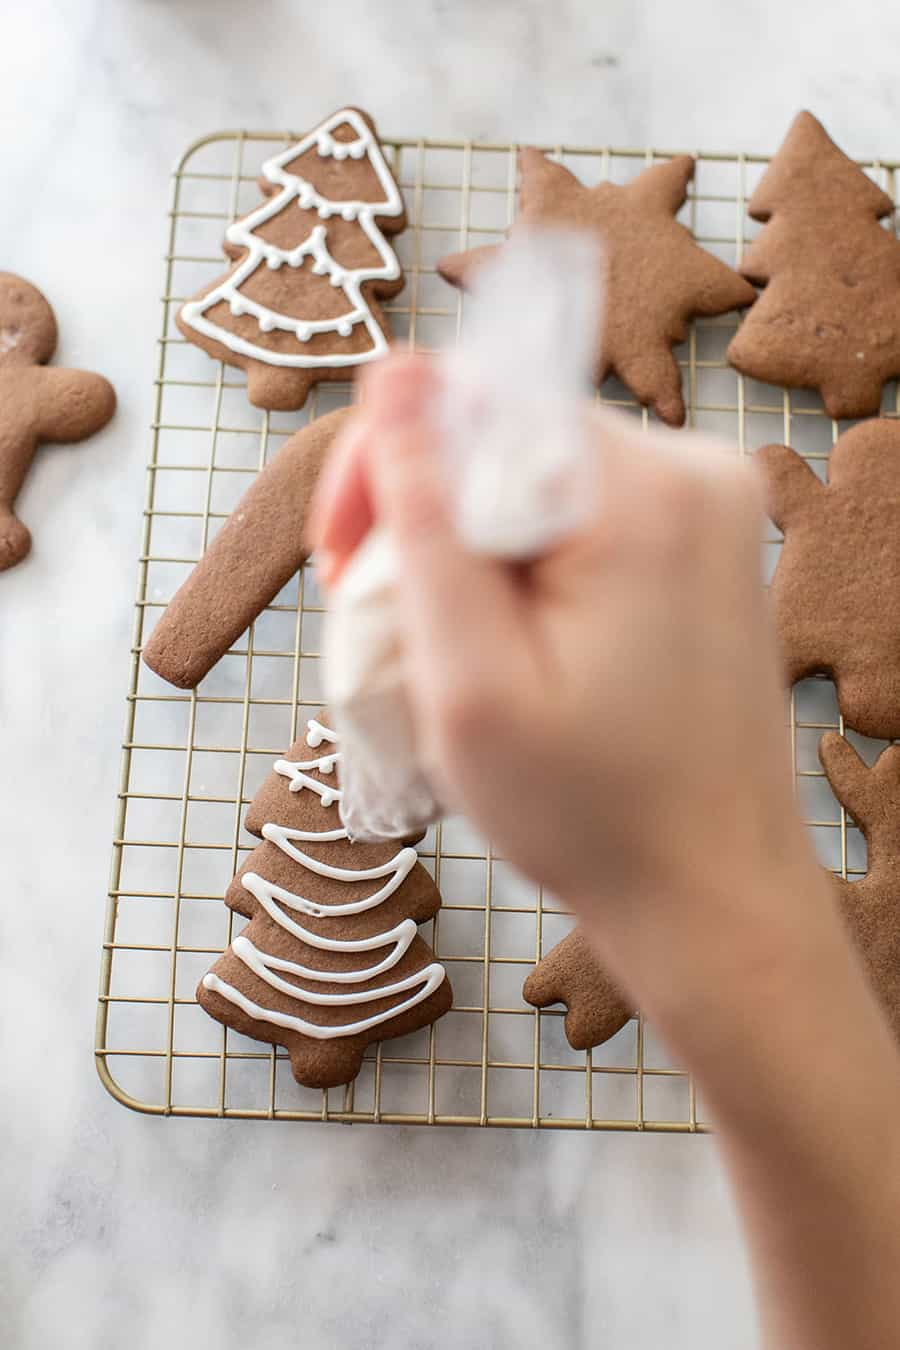 Decorating gingerbread cookies with royal icing